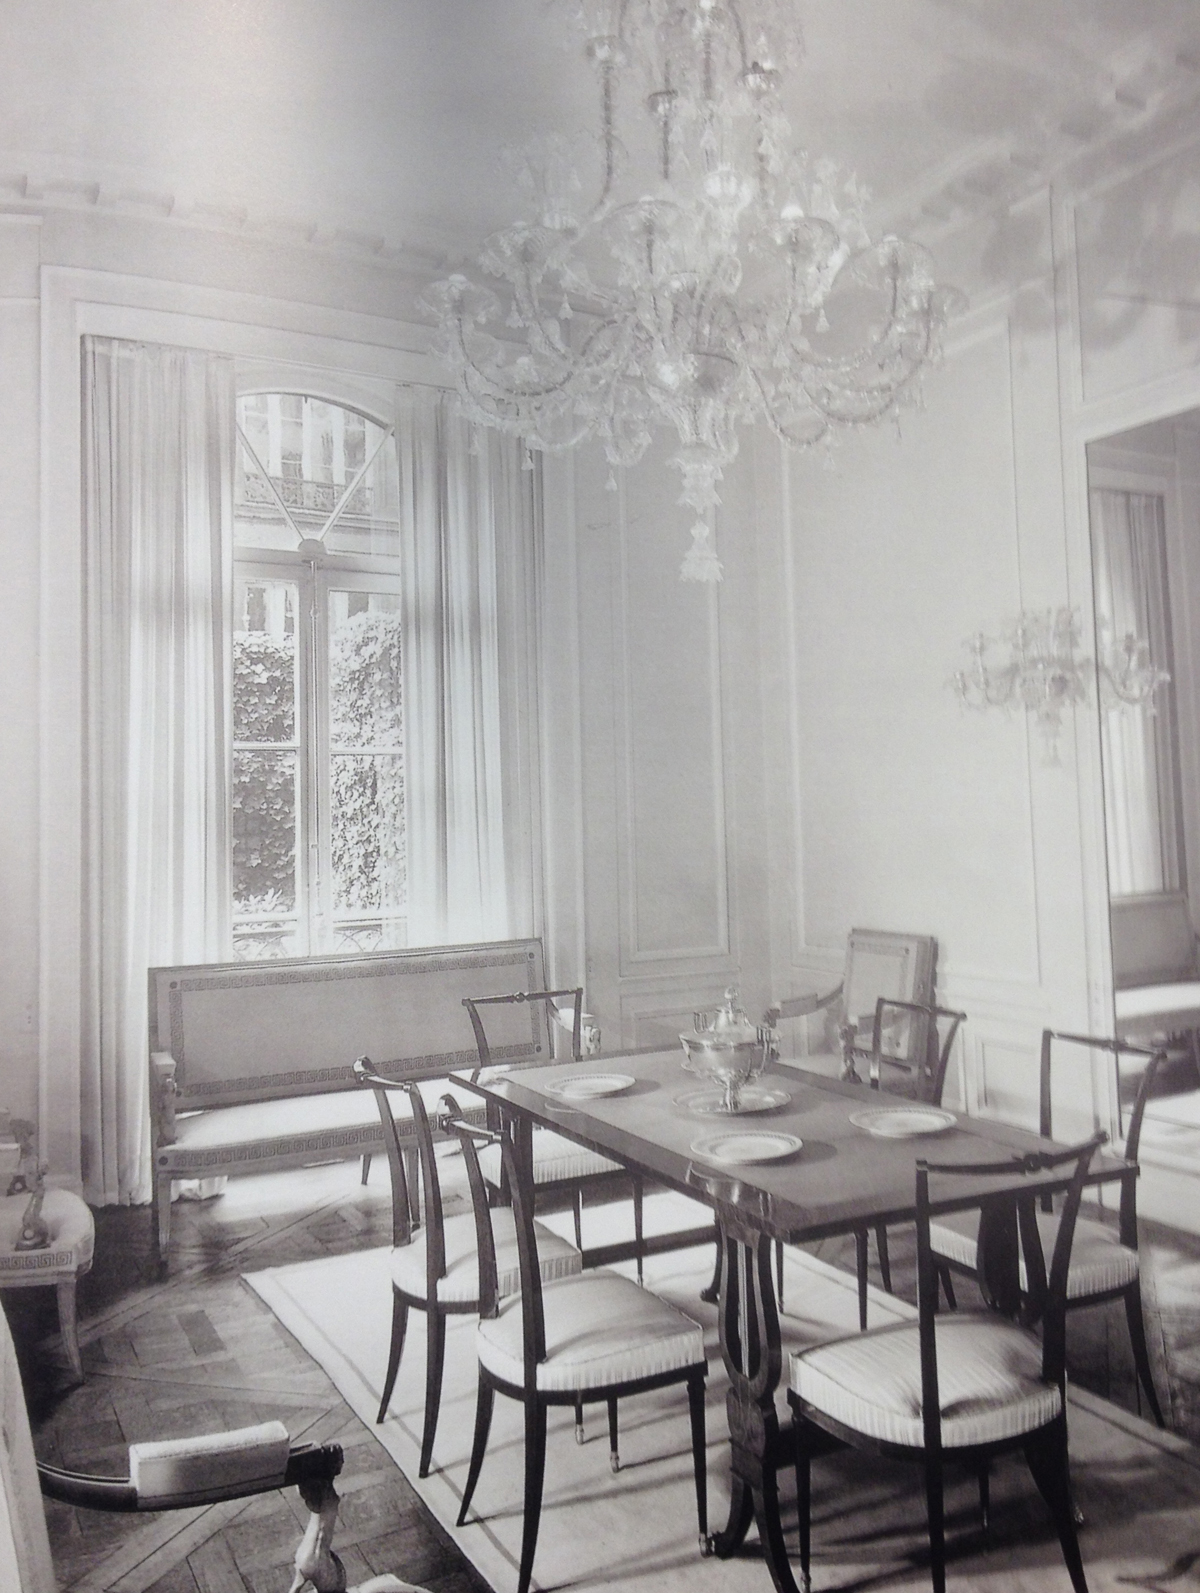 andre-abus-hotel-particulier-1949-manger-1